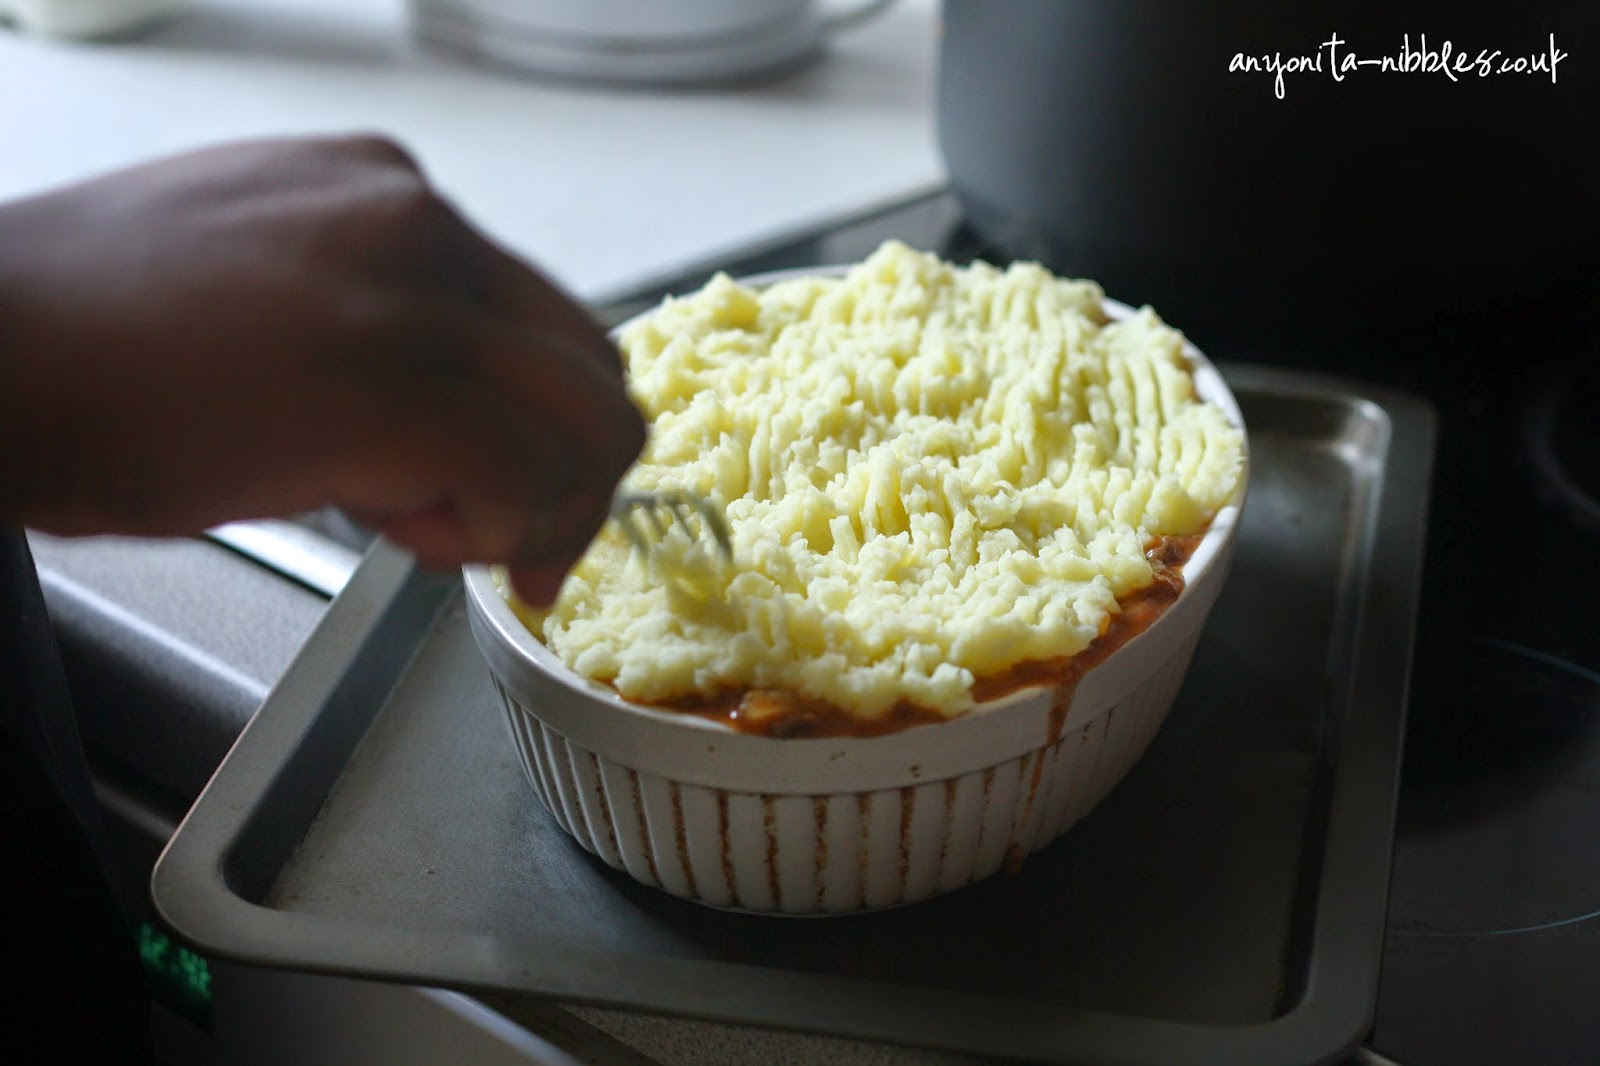 Adding texture to the mashed potatoes for cottage pie from anyonita-nibbles.co.uk